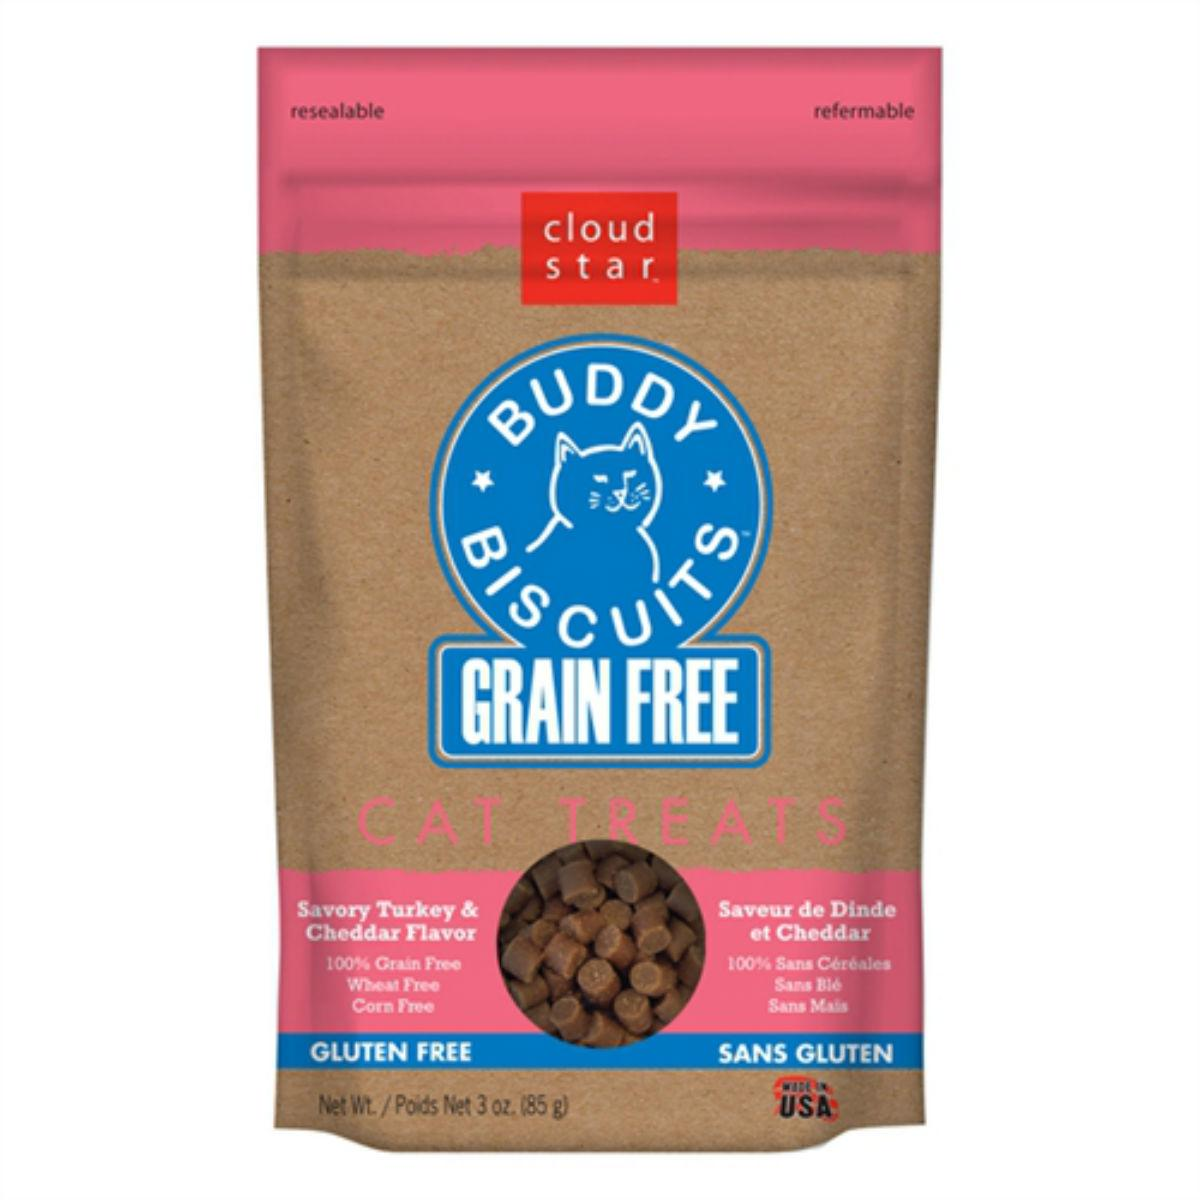 Buddy Biscuits Grain-Free Cat Treats - Savory Turkey & Cheddar